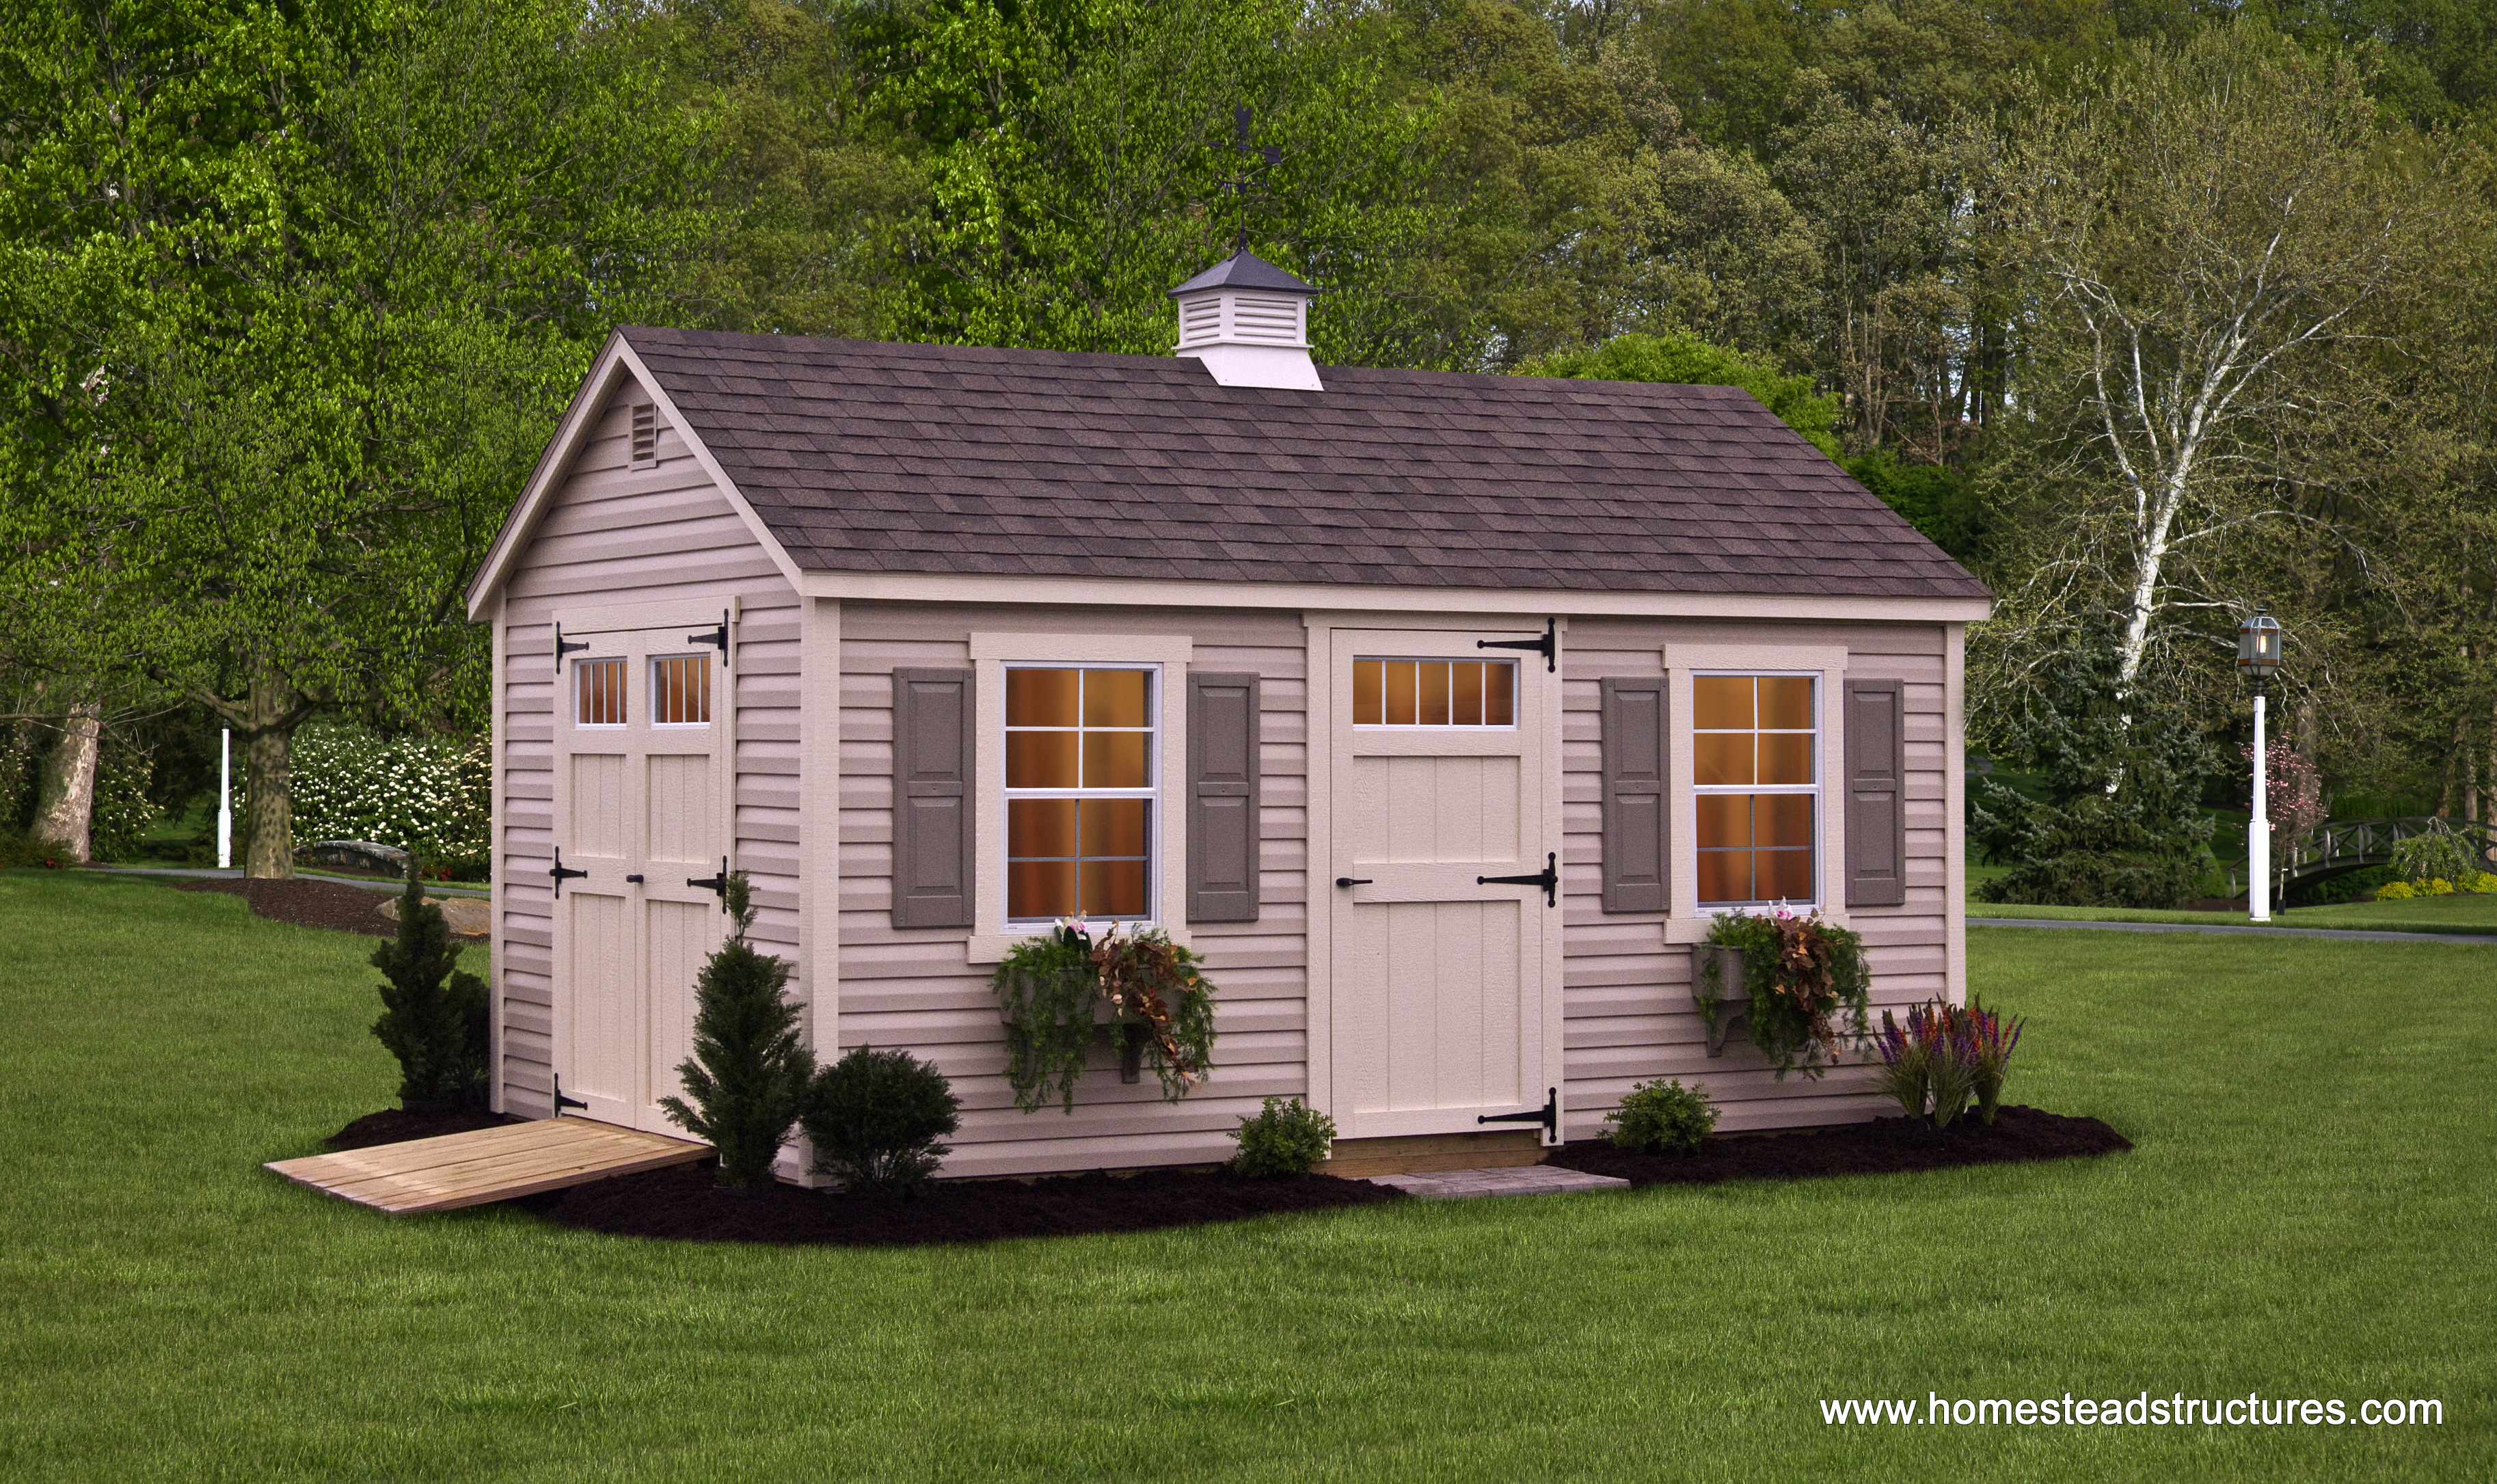 custom storage sheds for sale in pa garden sheds amish sheds - Garden Sheds New Hampshire